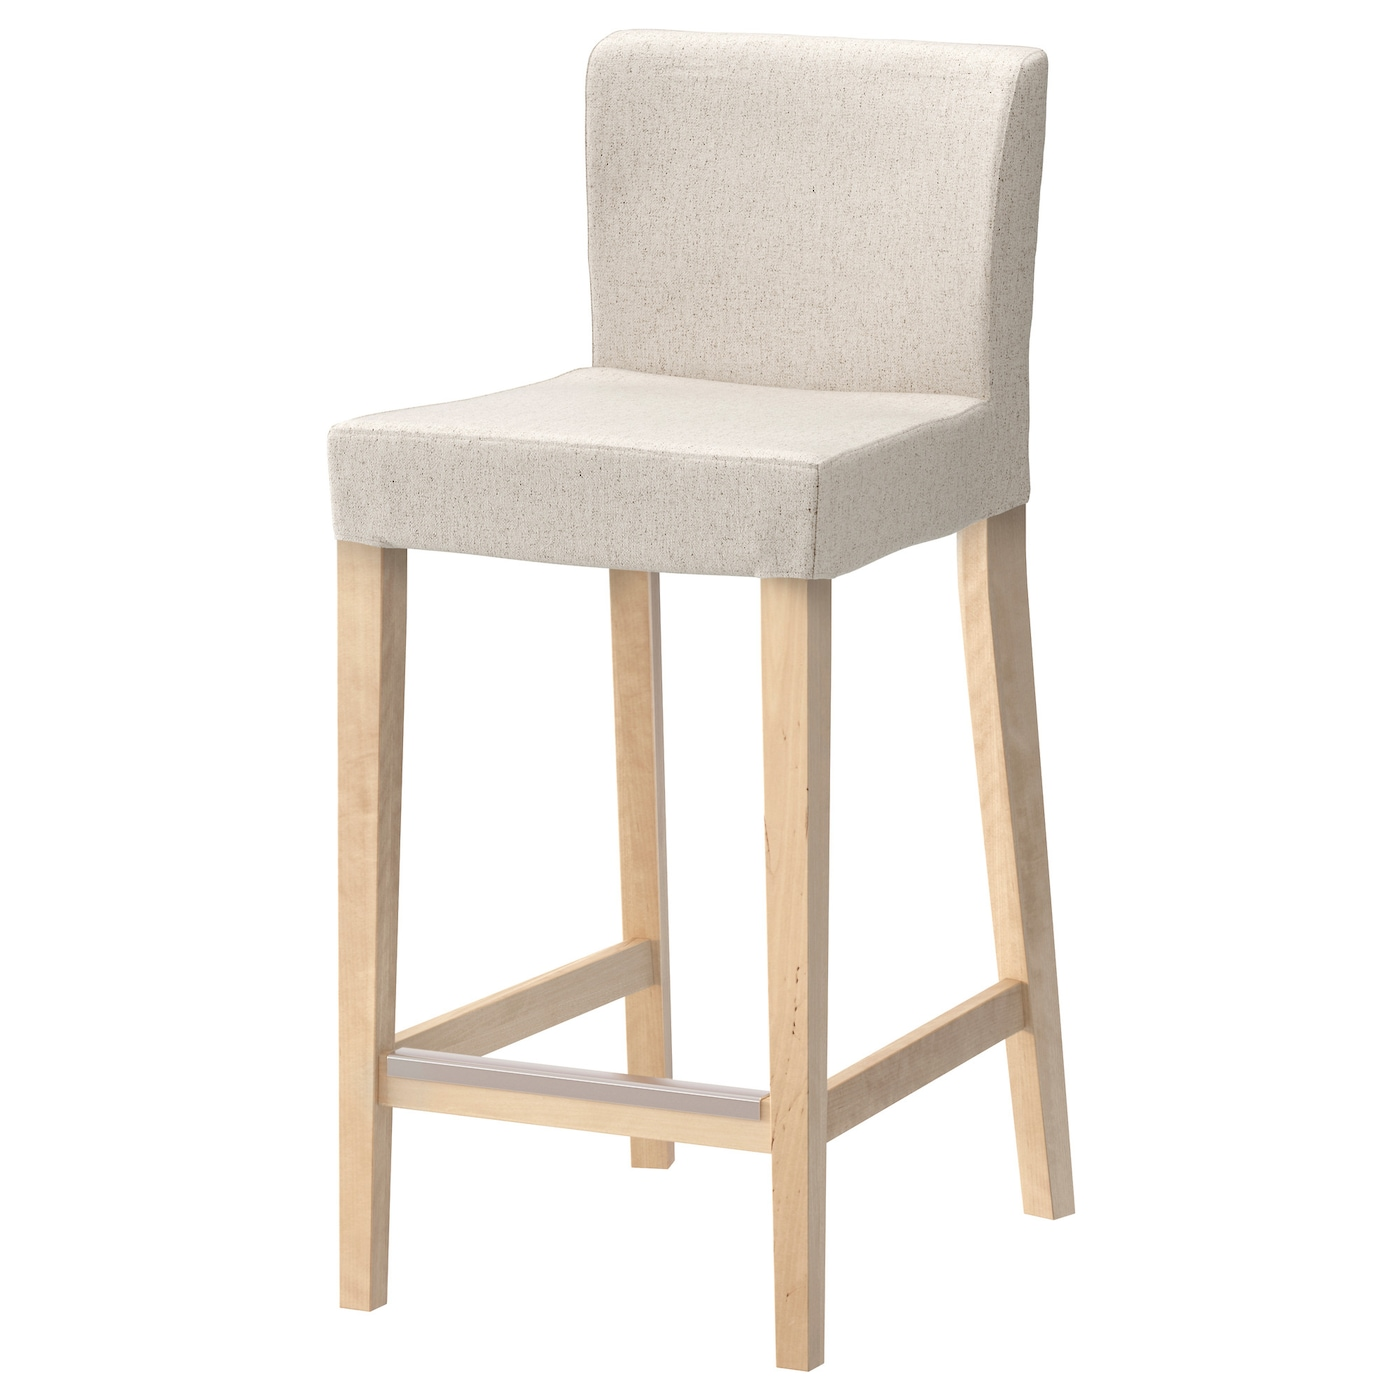 Bar Stools & Bar Chairs IKEA